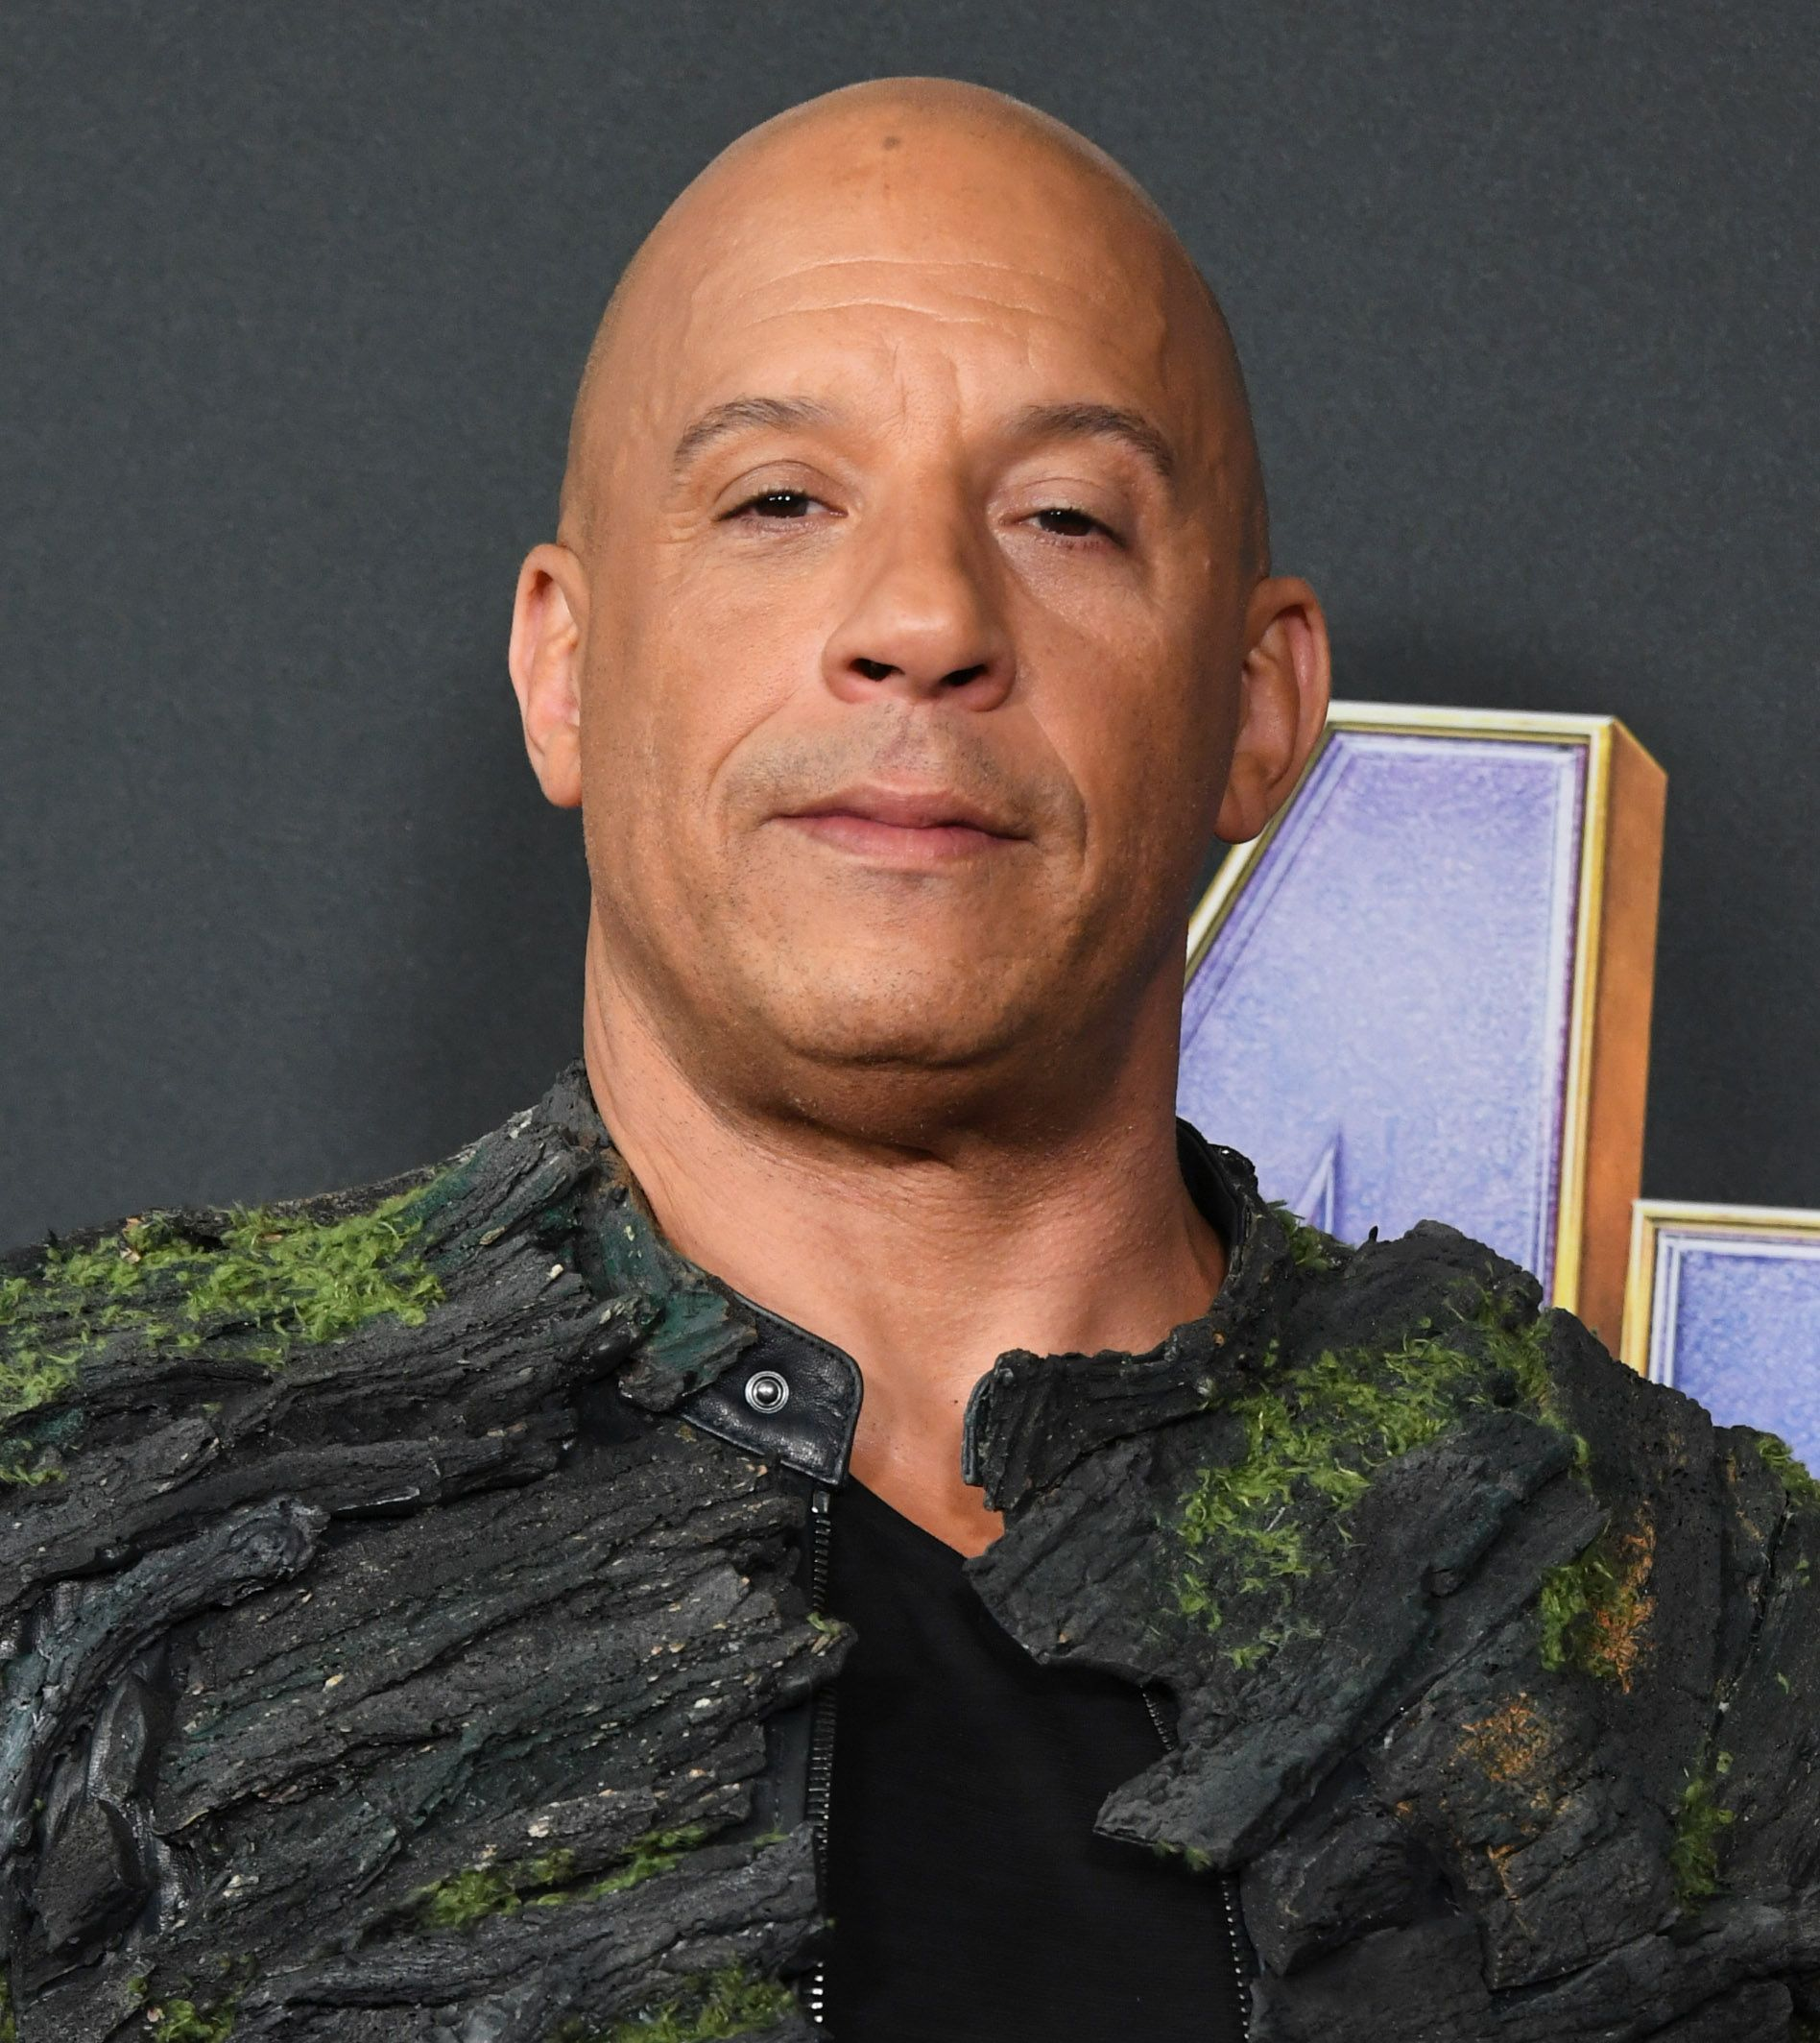 """Vin Diesel atthe world premiere of """"Avengers: Endgame"""" at Los Angeles Convention Center on April 22, 2019, in California   Photo:Jon Kopaloff/Getty Images"""